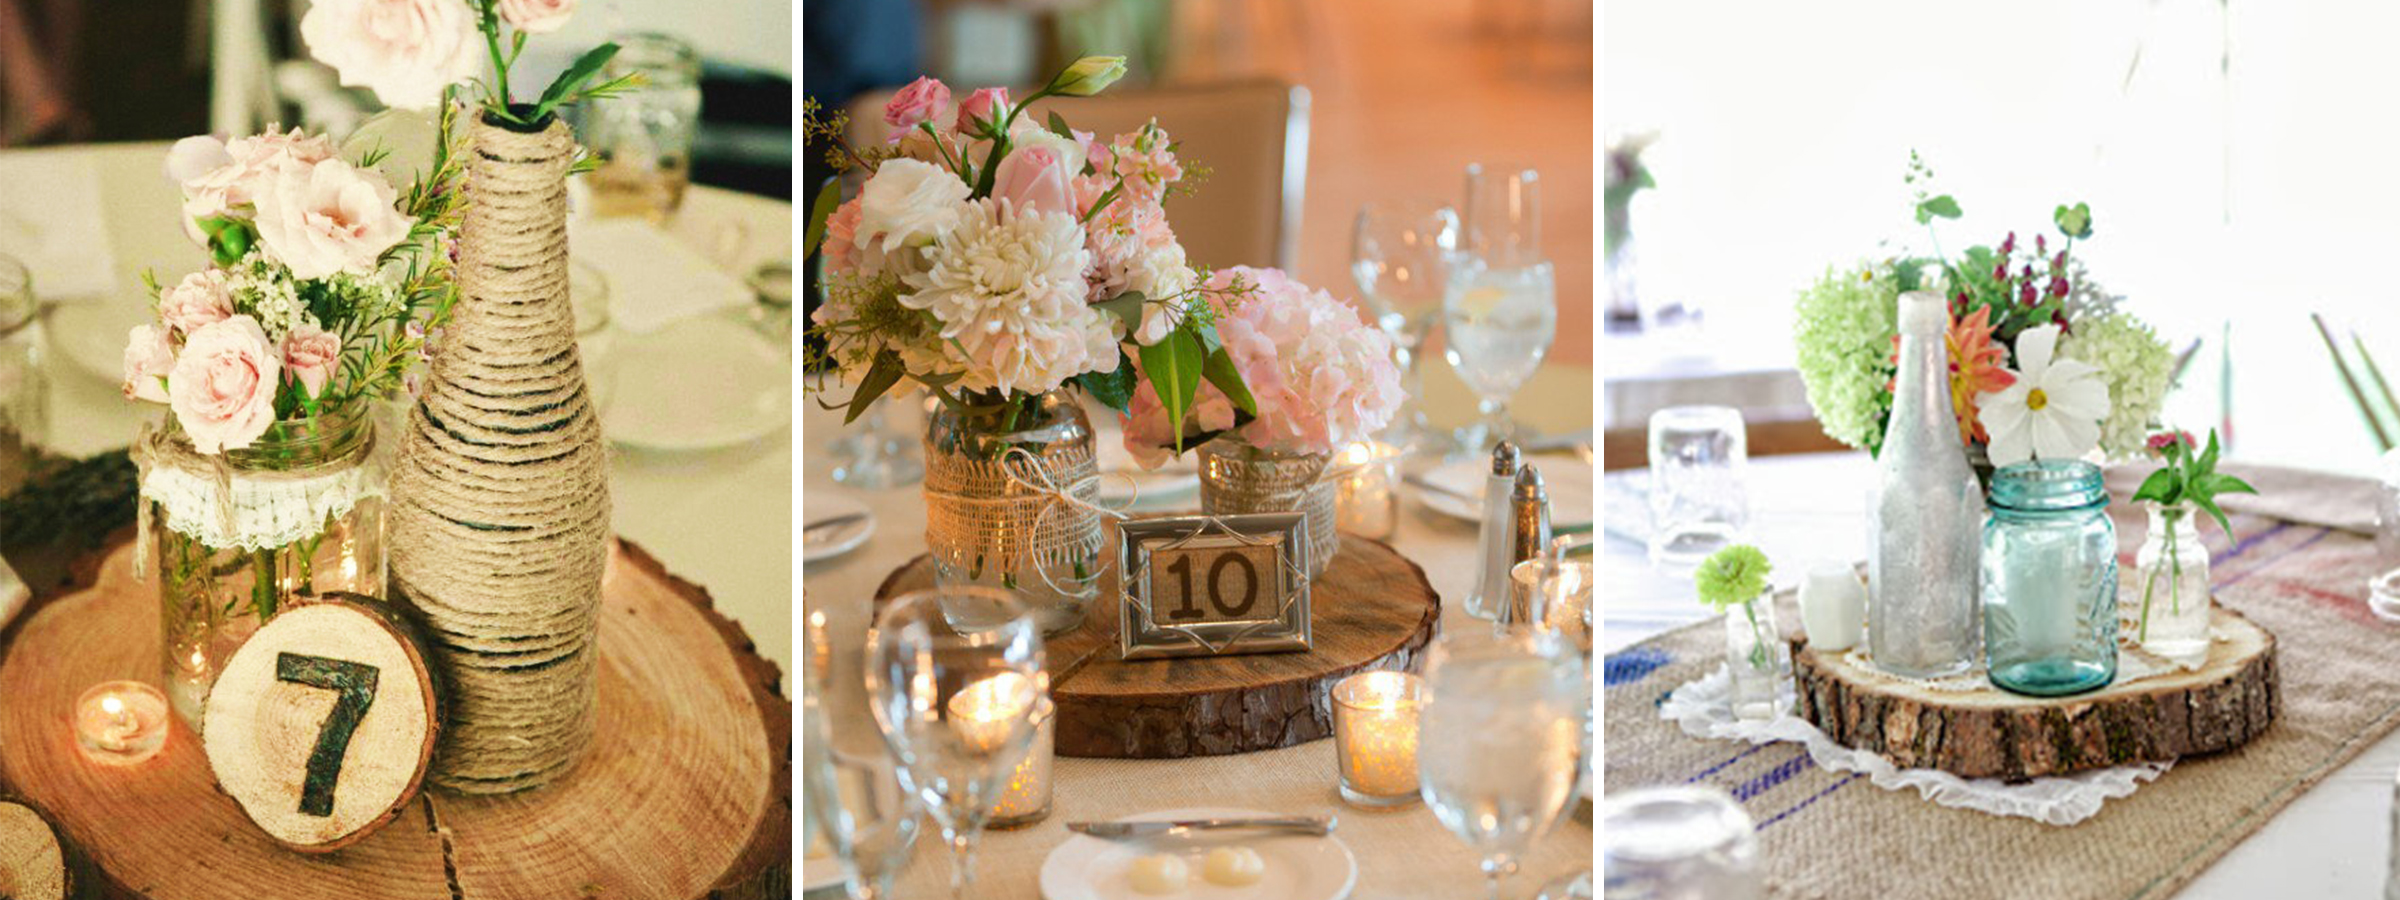 Pinterest Wedding Table Ideas